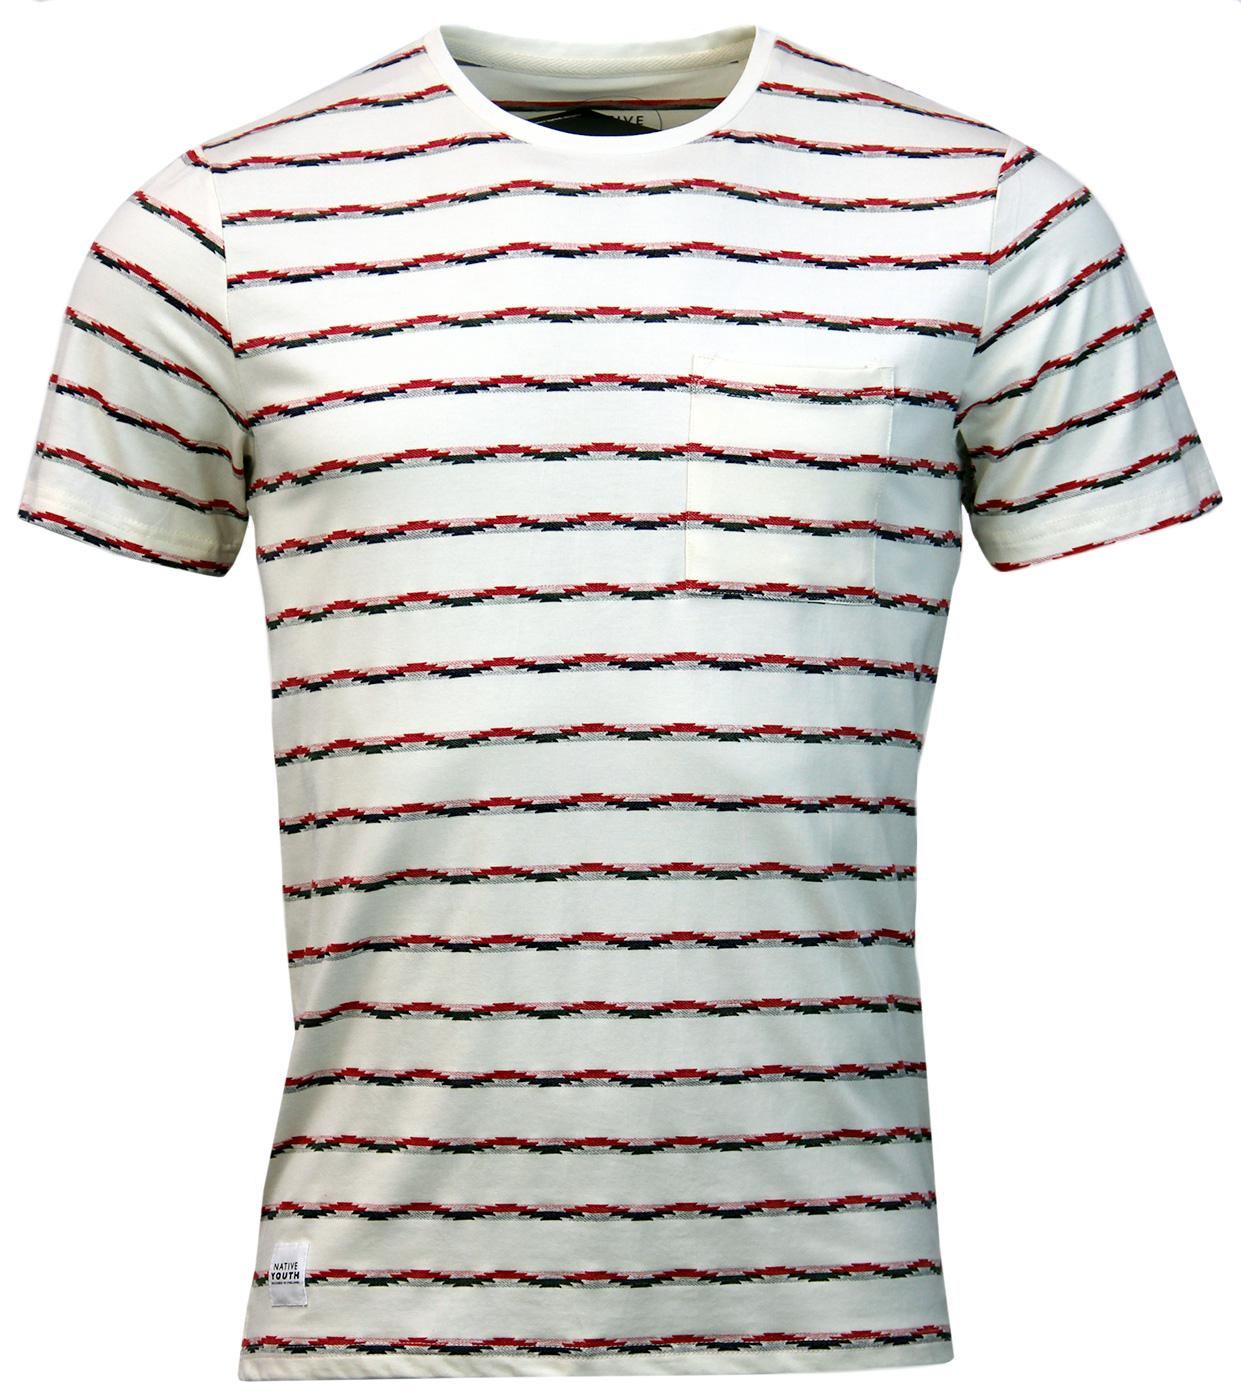 NATIVE YOUTH Retro Indie Jacquard Stripe T-Shirt